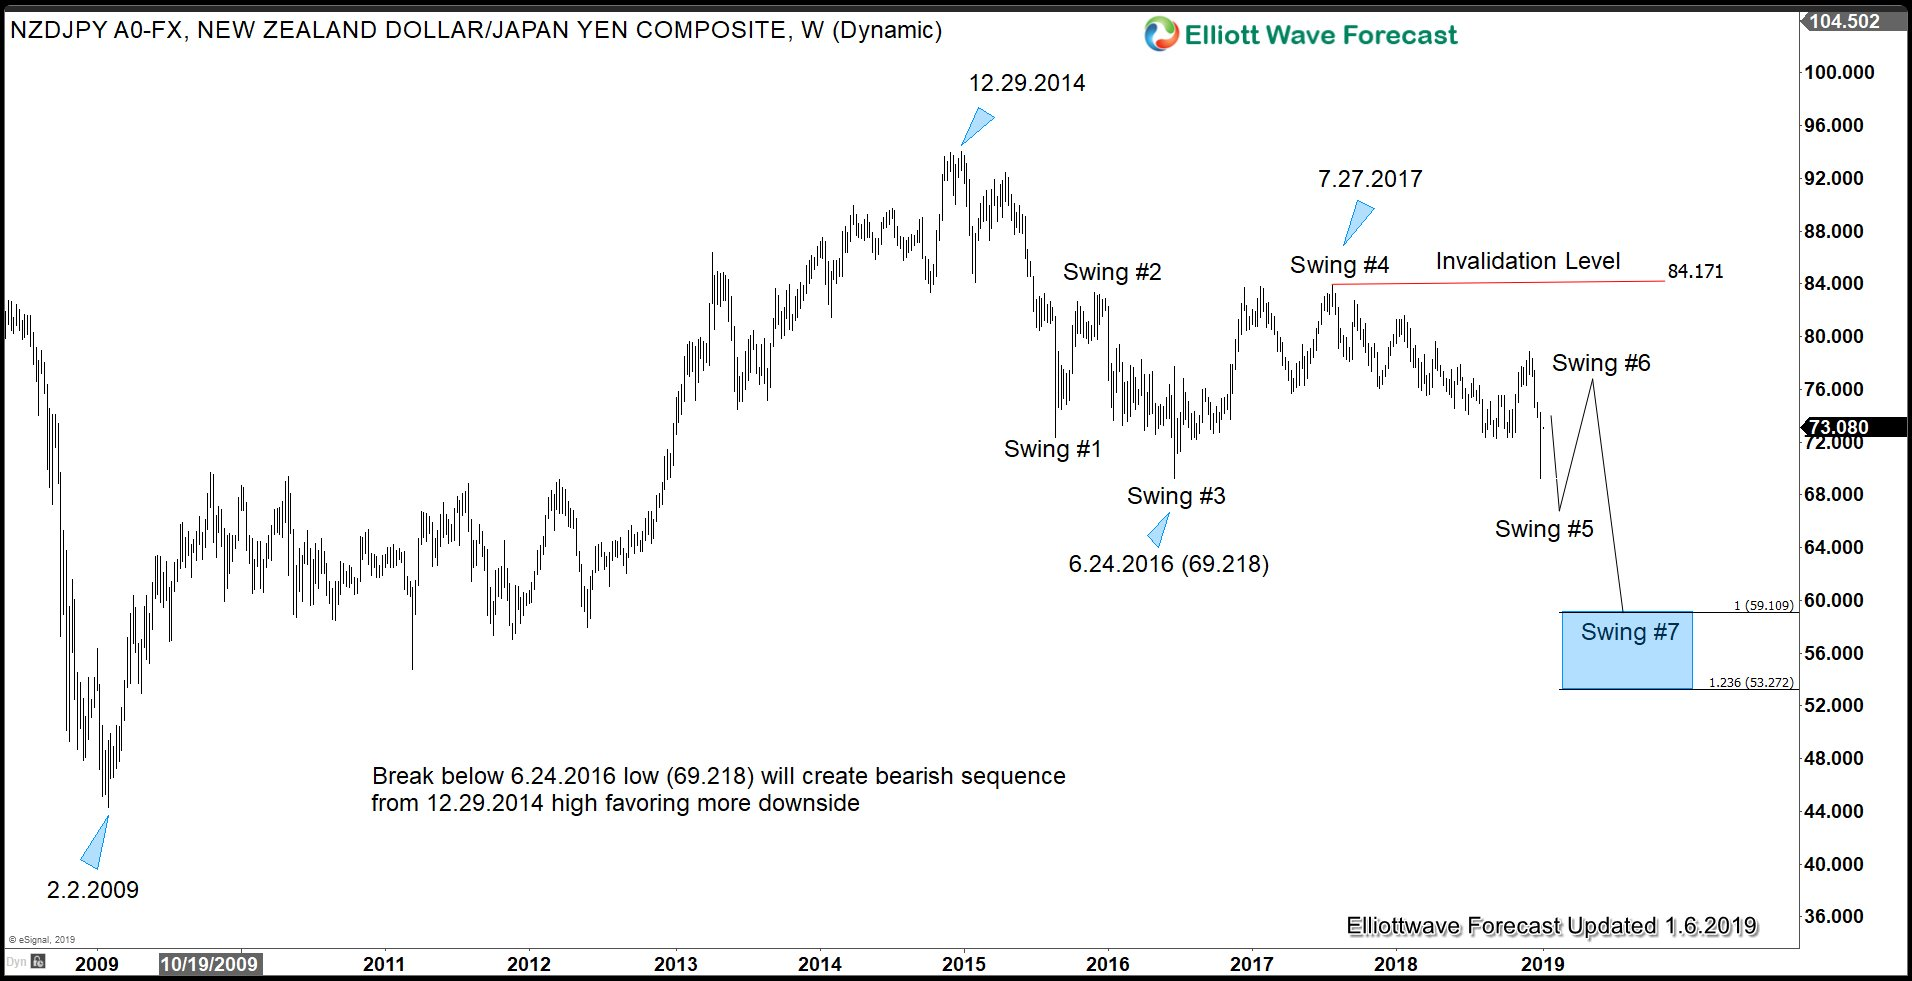 Yen Elliott Wave Sequence Outlook against NZD in 2019 favors more downside